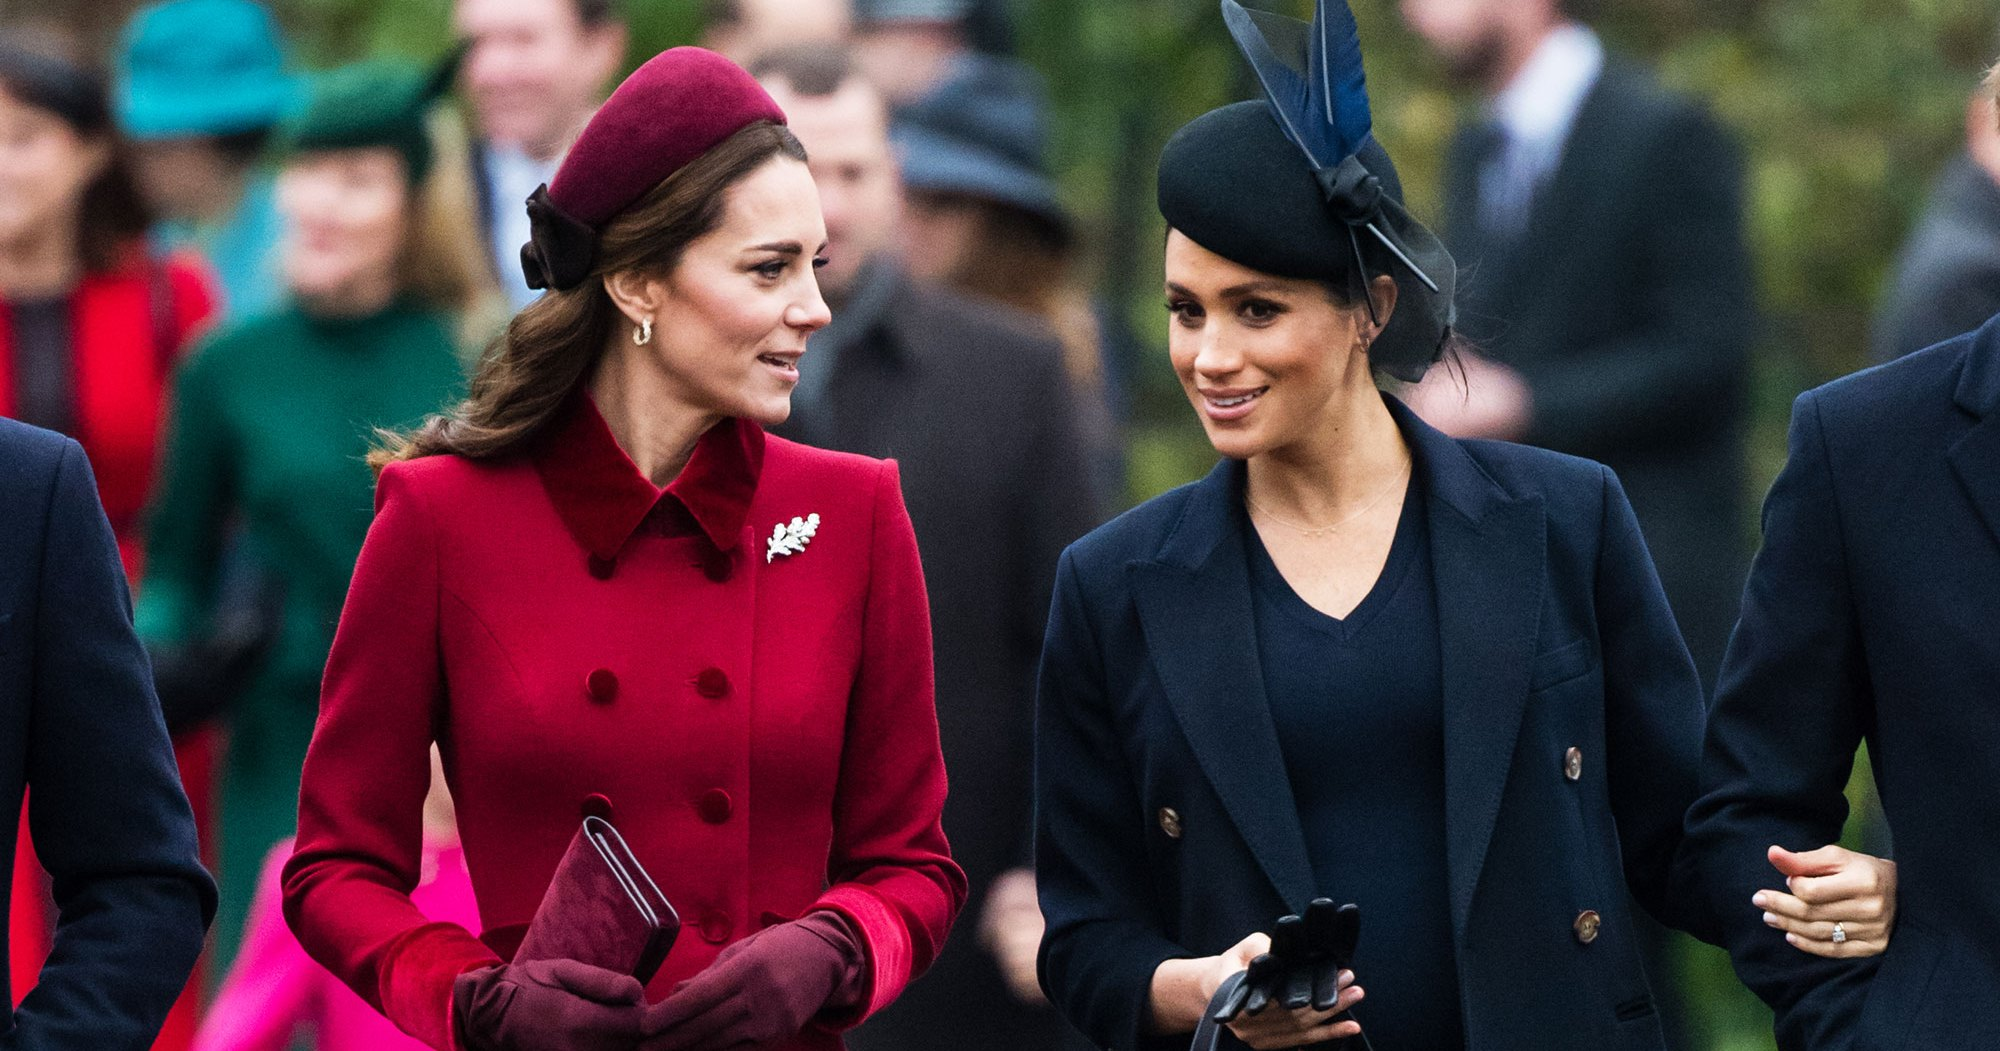 Meghan Markle Will Have 2nd Baby Shower in the U.K. in April